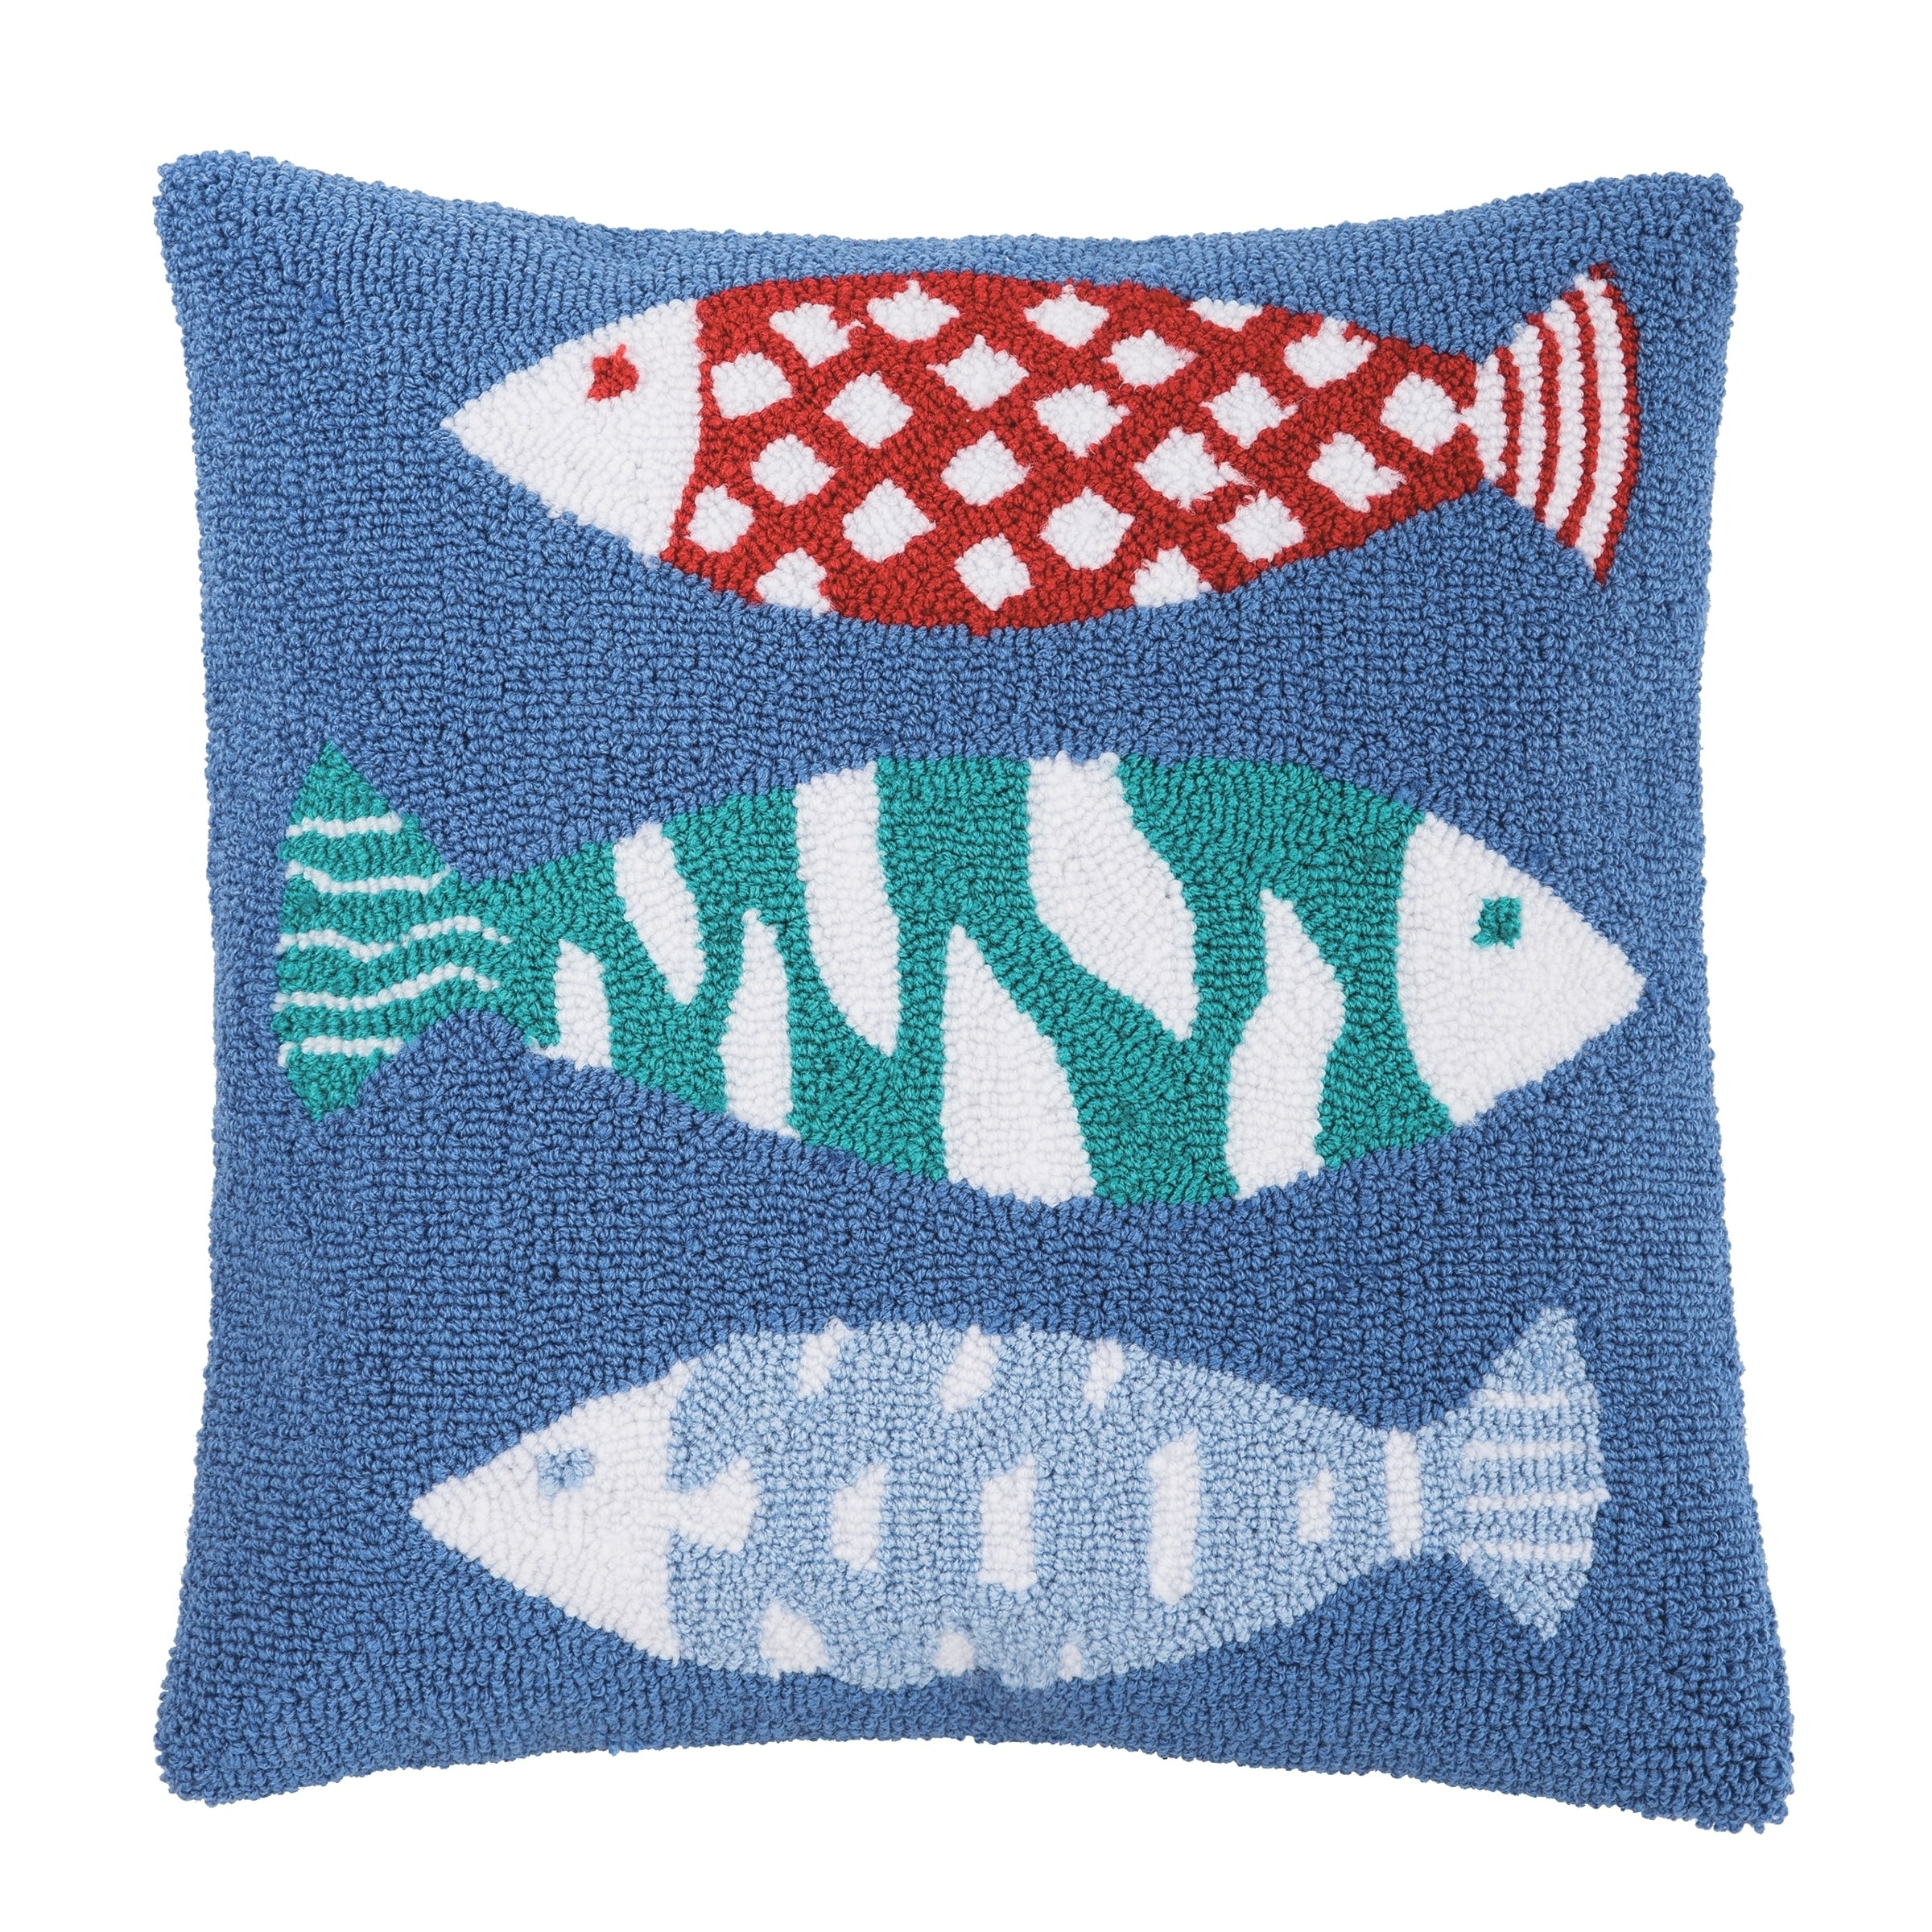 Harpswell Fish 18 x 18 Pillow